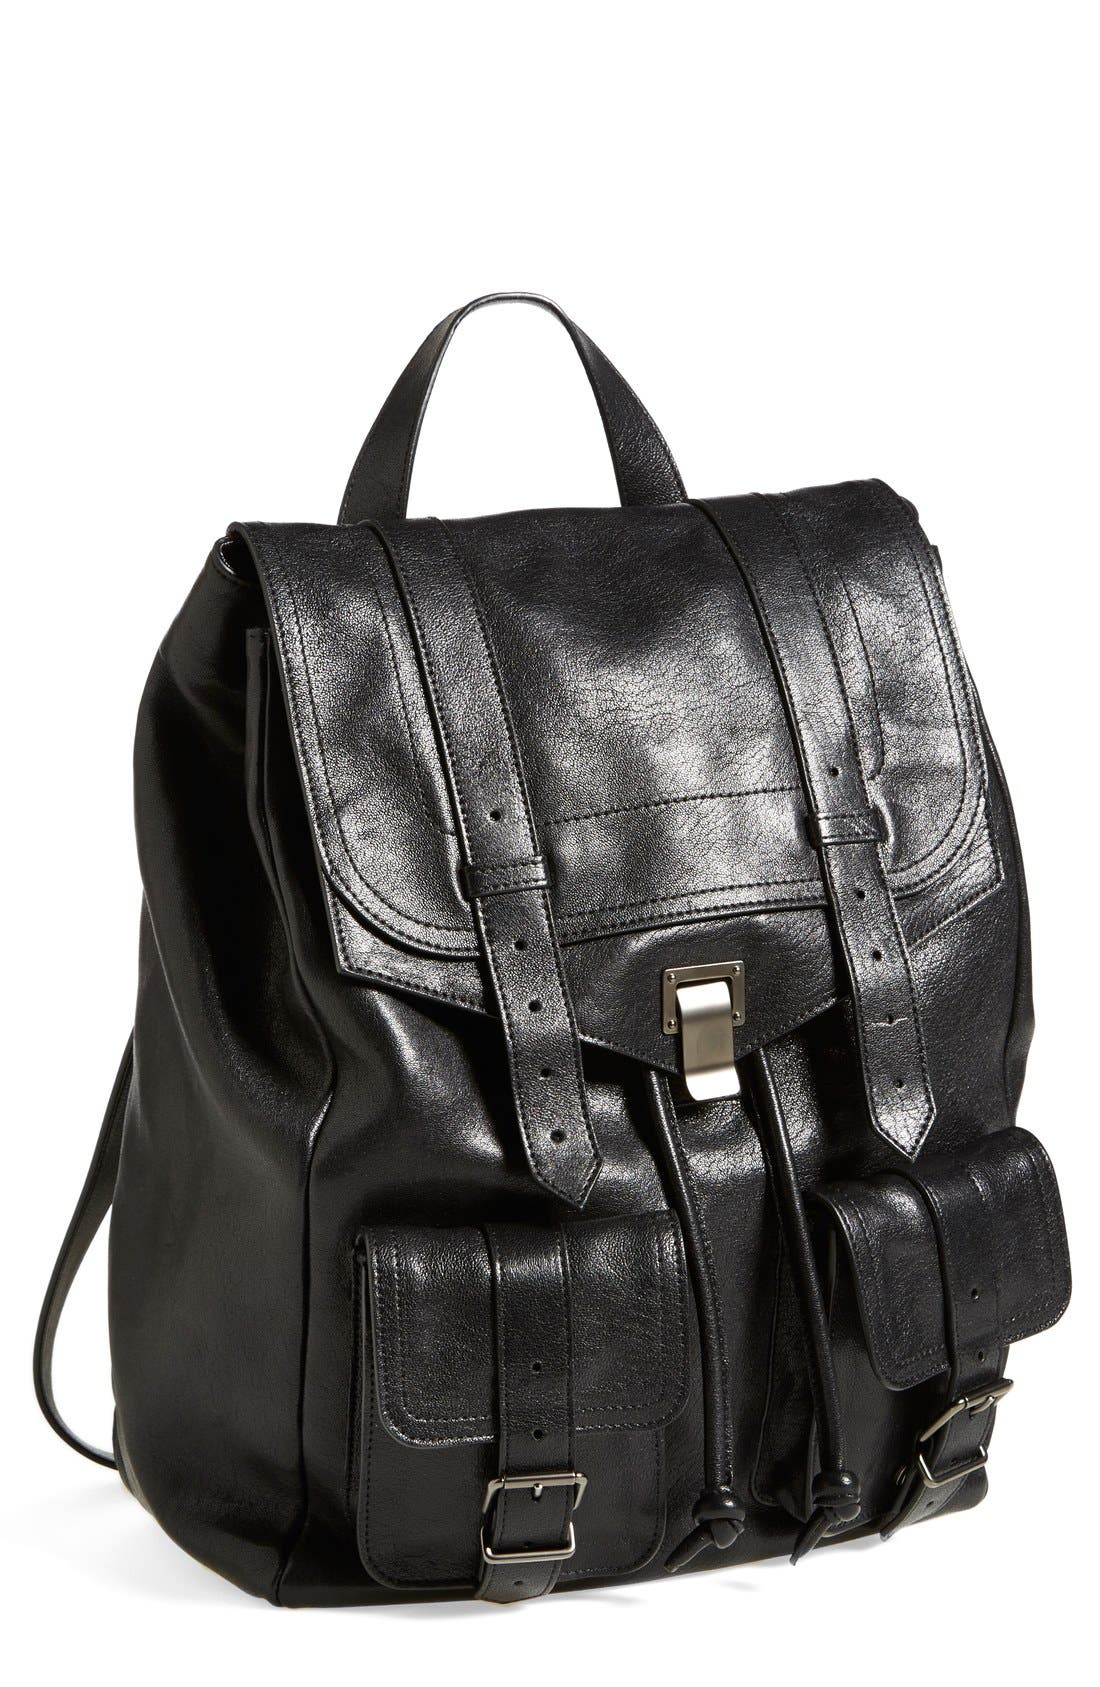 PROENZA SCHOULER 'PS1' Leather Backpack, Main, color, 001